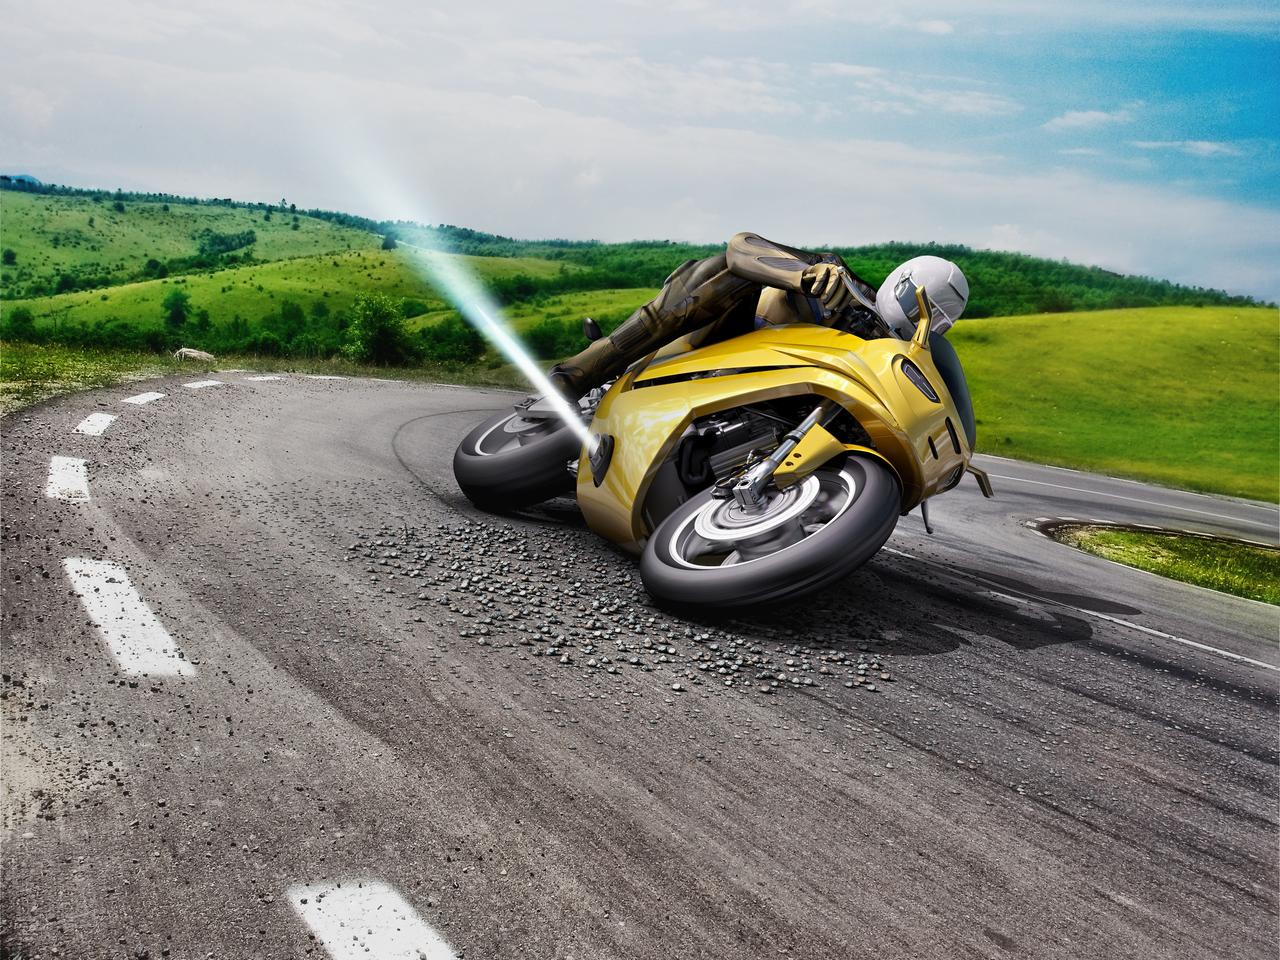 Bosch suggestsadding lateral thrusters to keep the motorcycle upright in the case of a slip